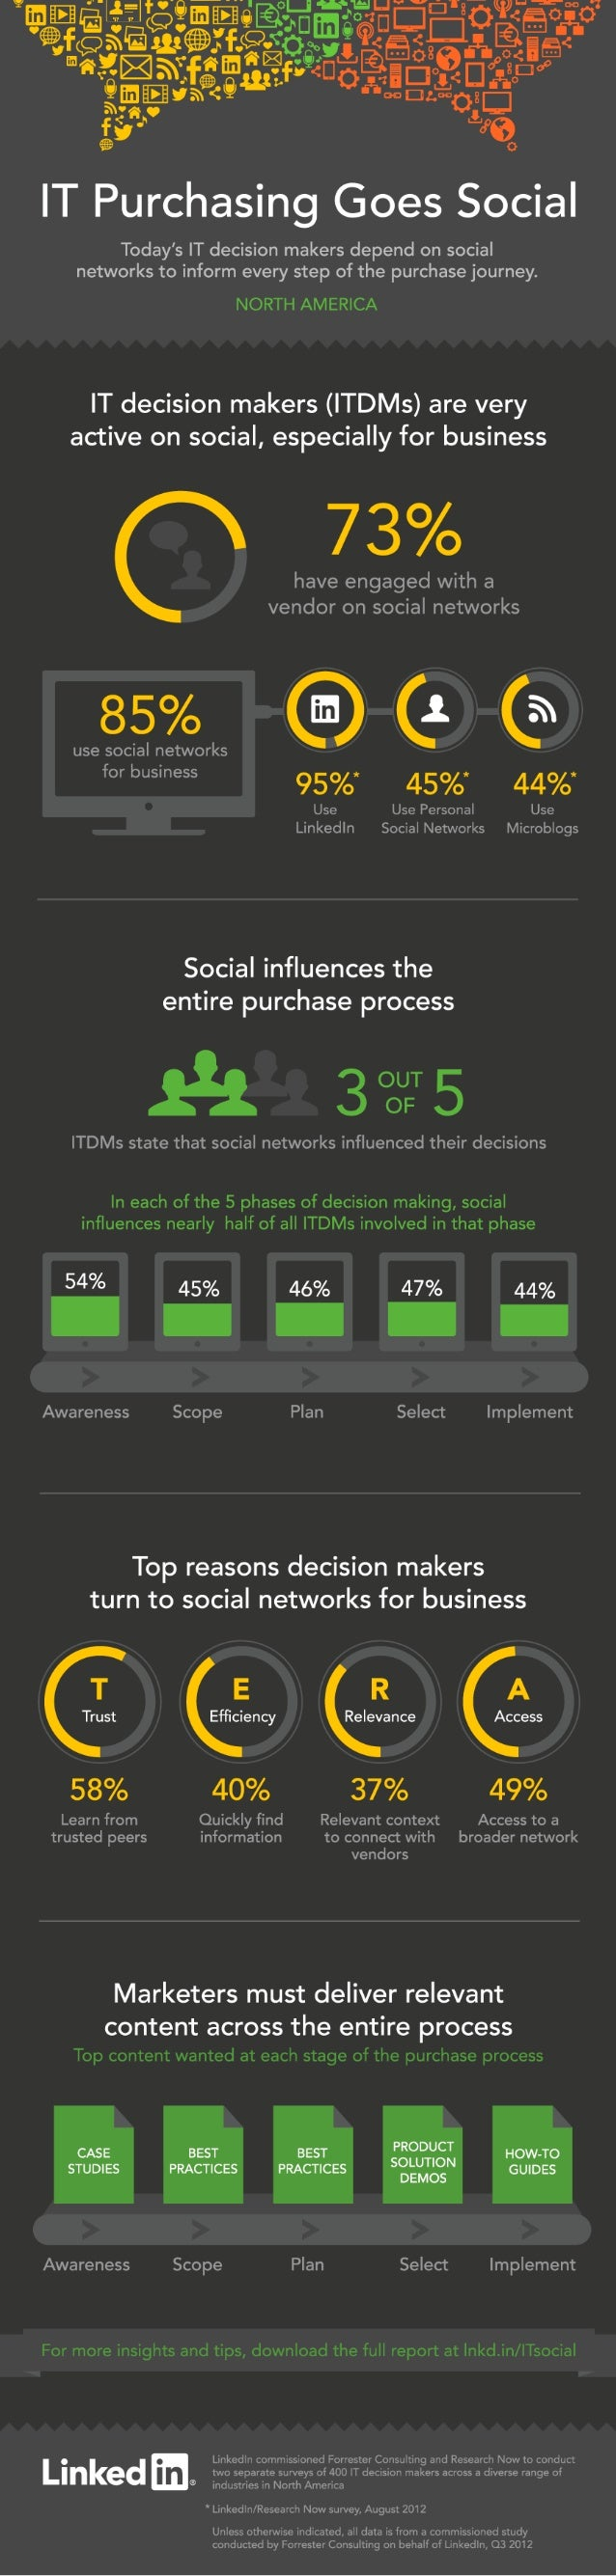 IT Purchasing Goes Social: Infographic